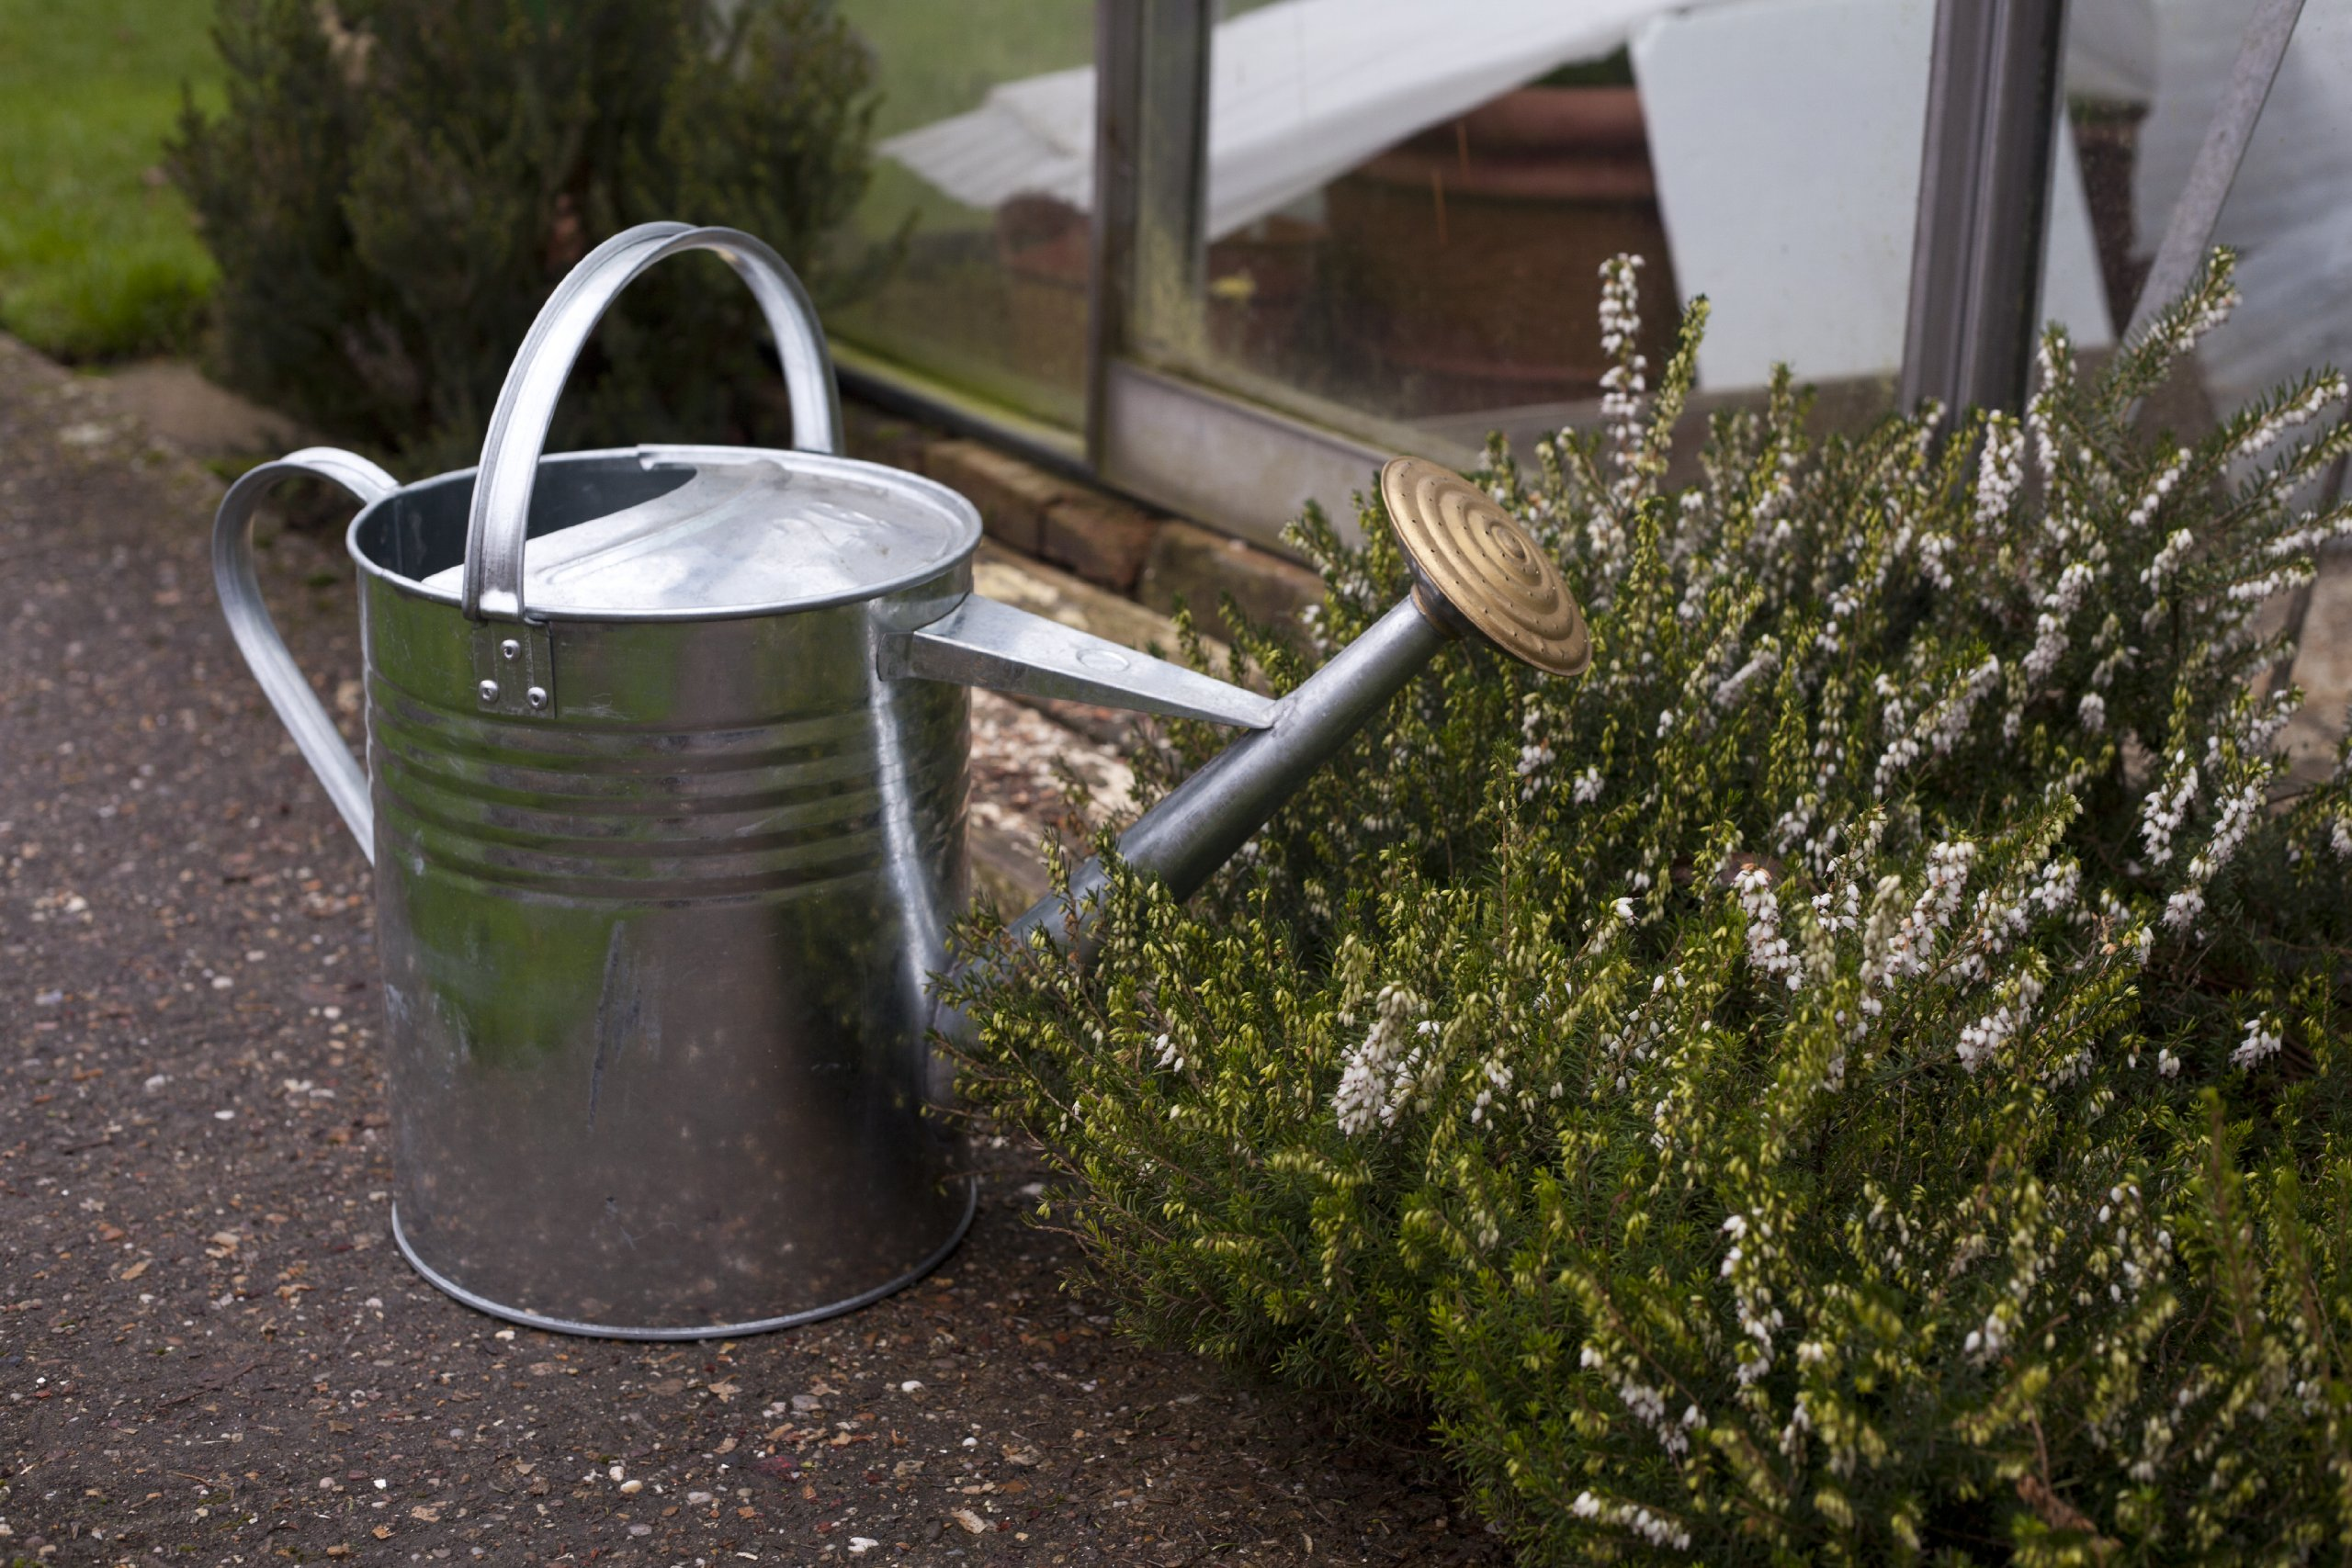 Vintage Watering Cans: A Whimsical Guide - Urban Turnip